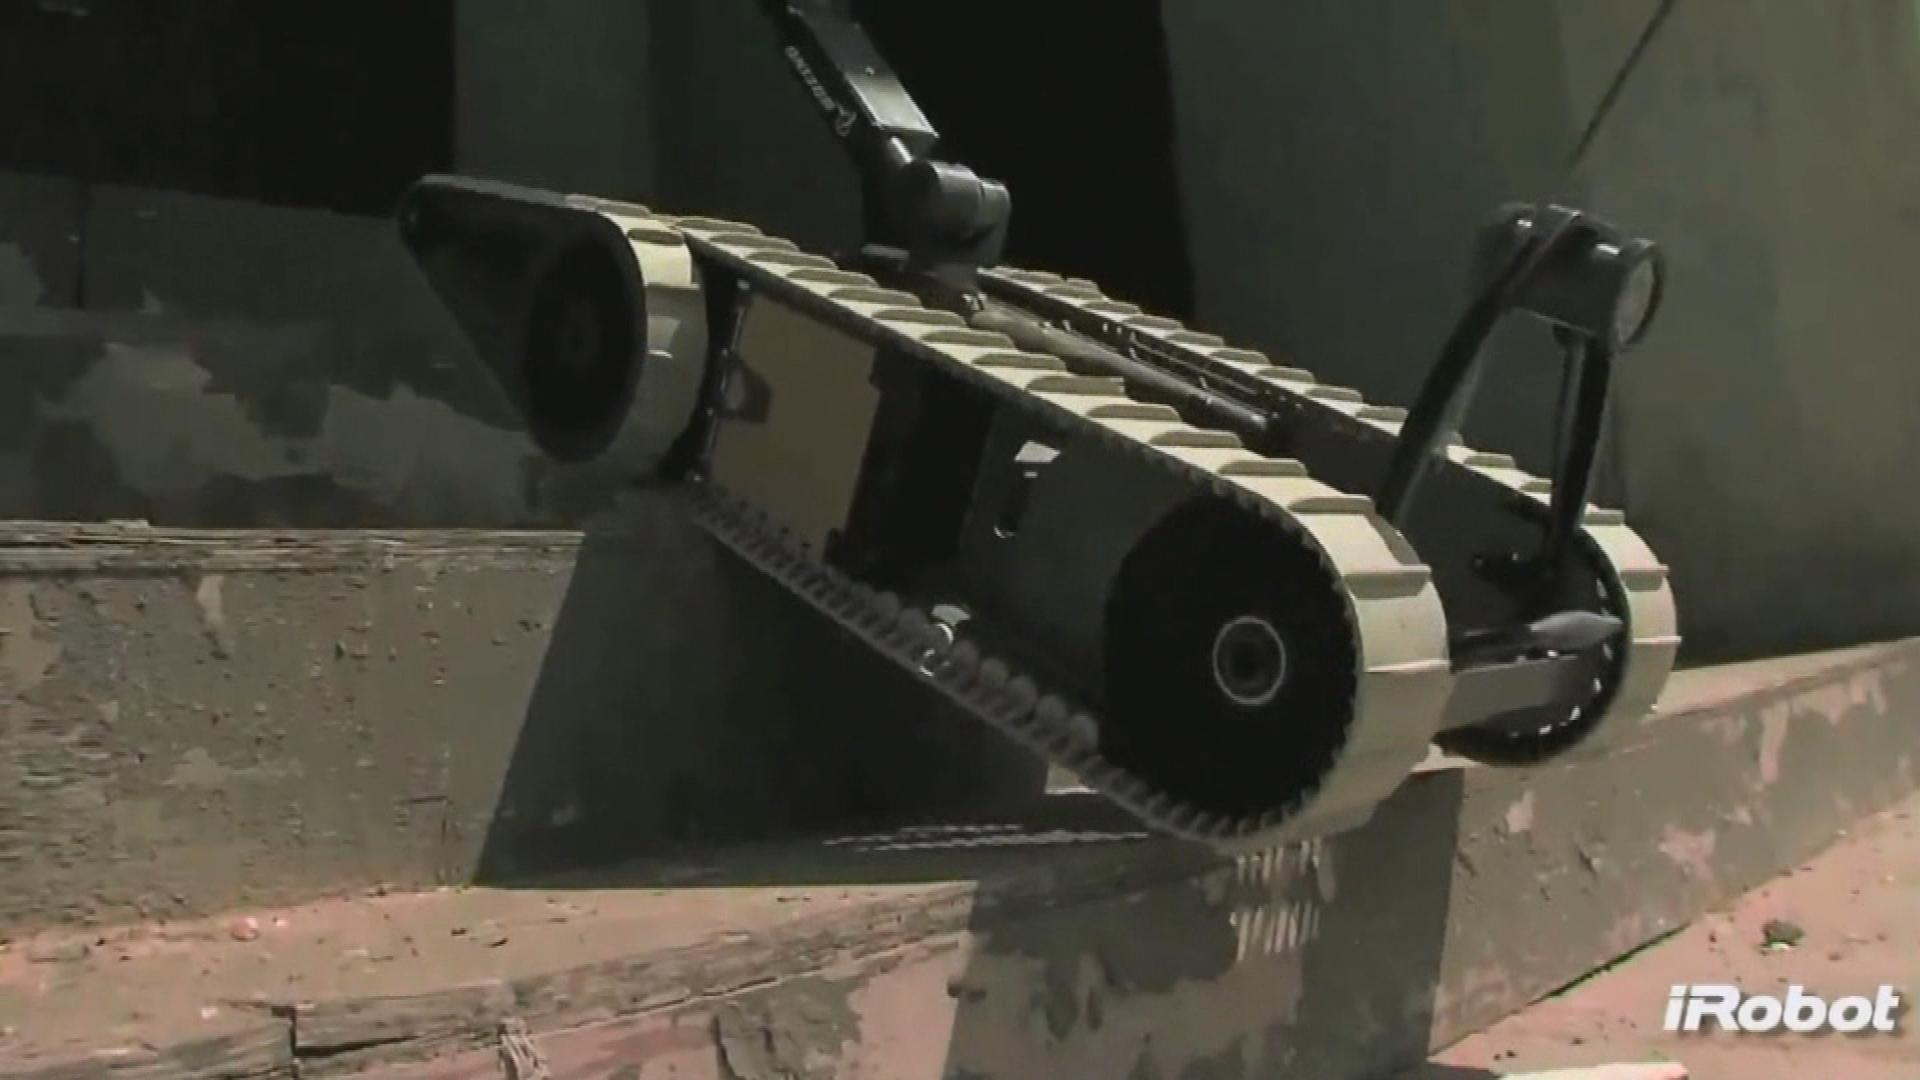 An urban robot the soldiers are accused of stealing (credit: CBS)